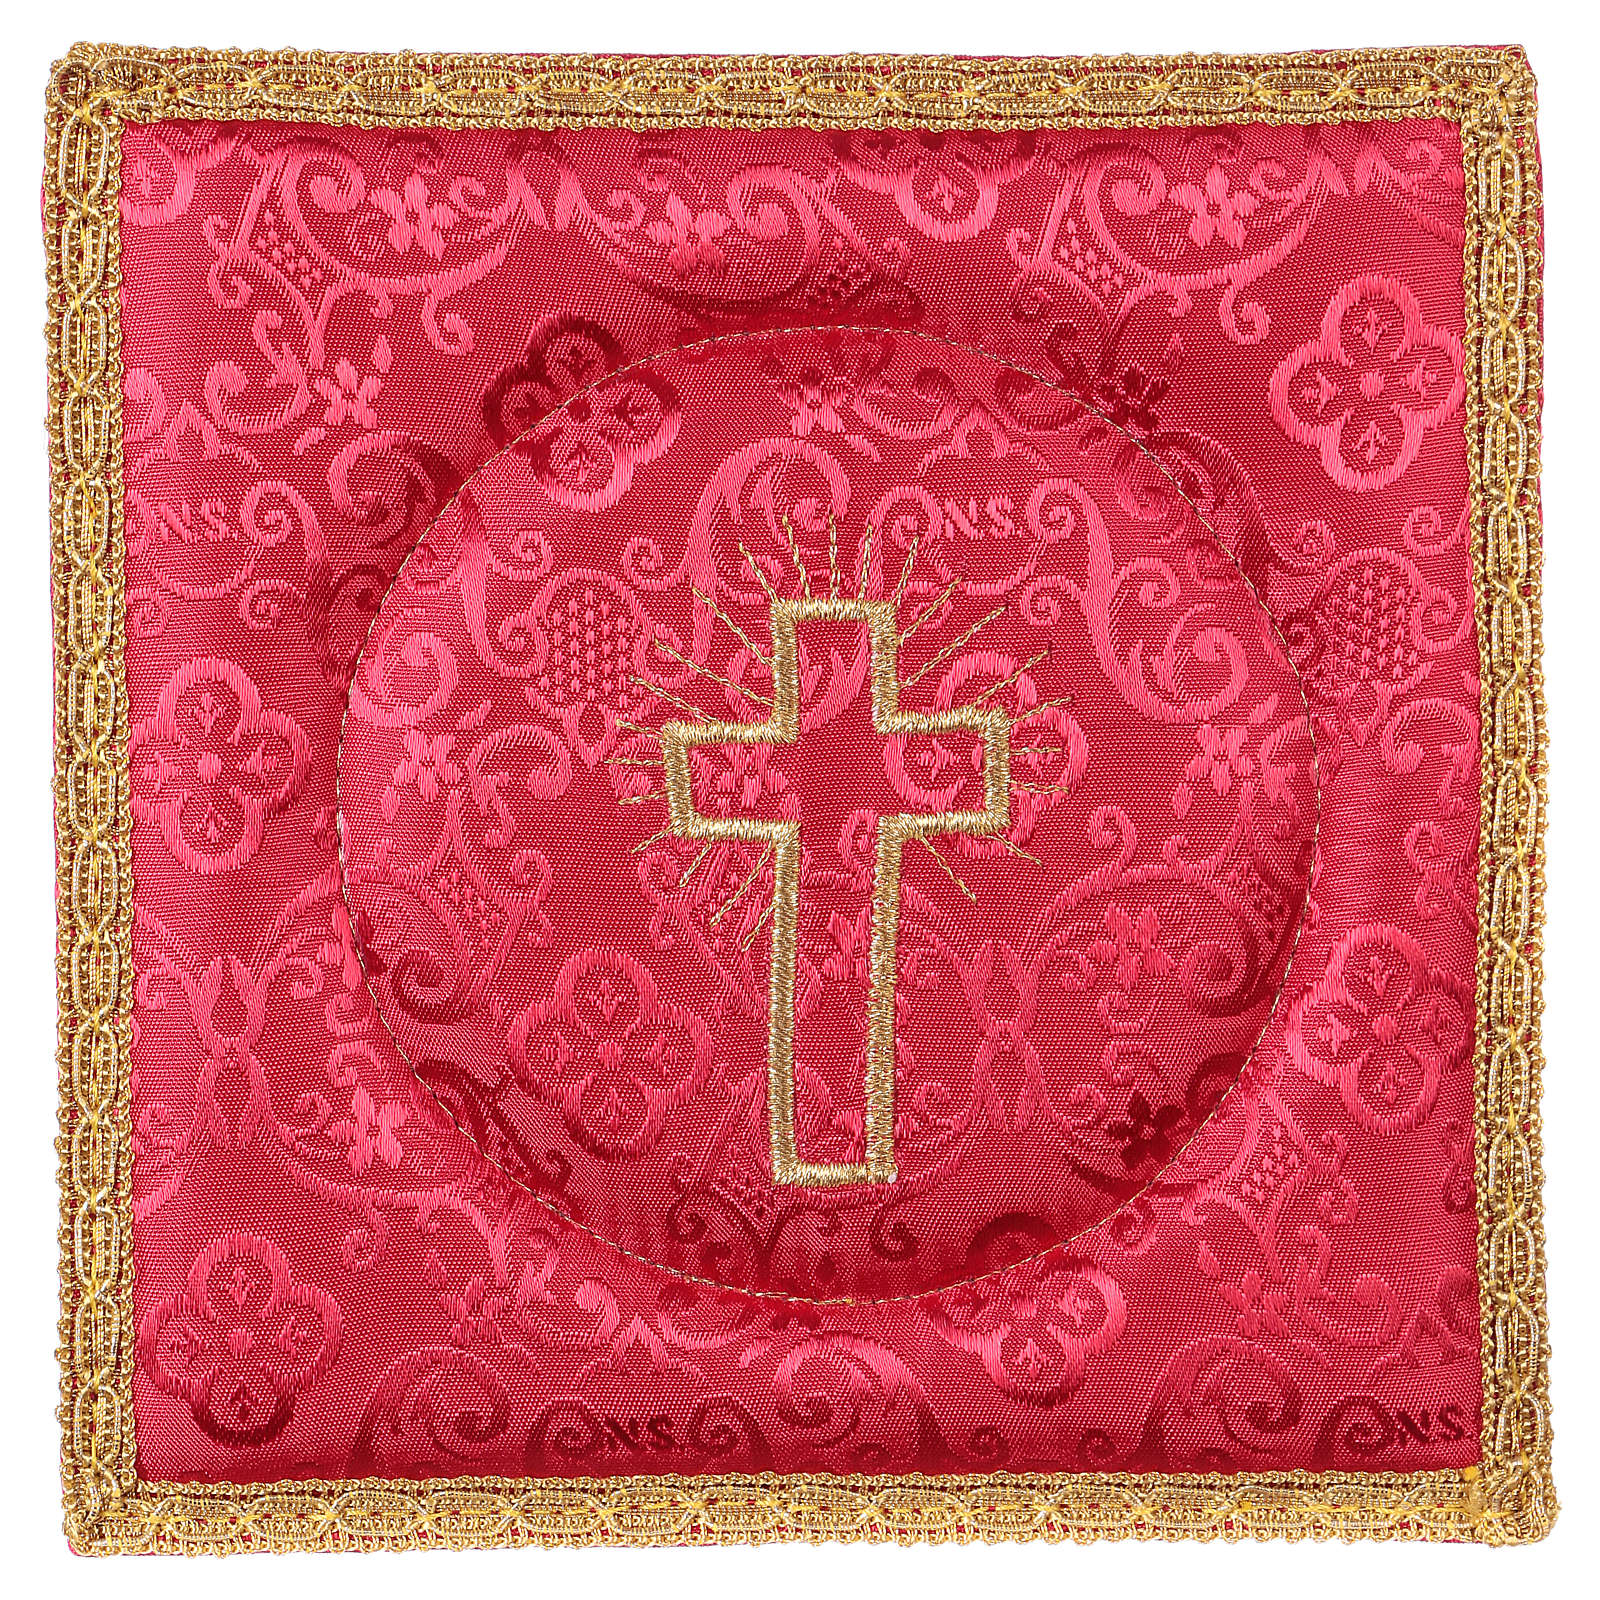 Chalice veil (pall) with cross embroidery on red damask fabric 4